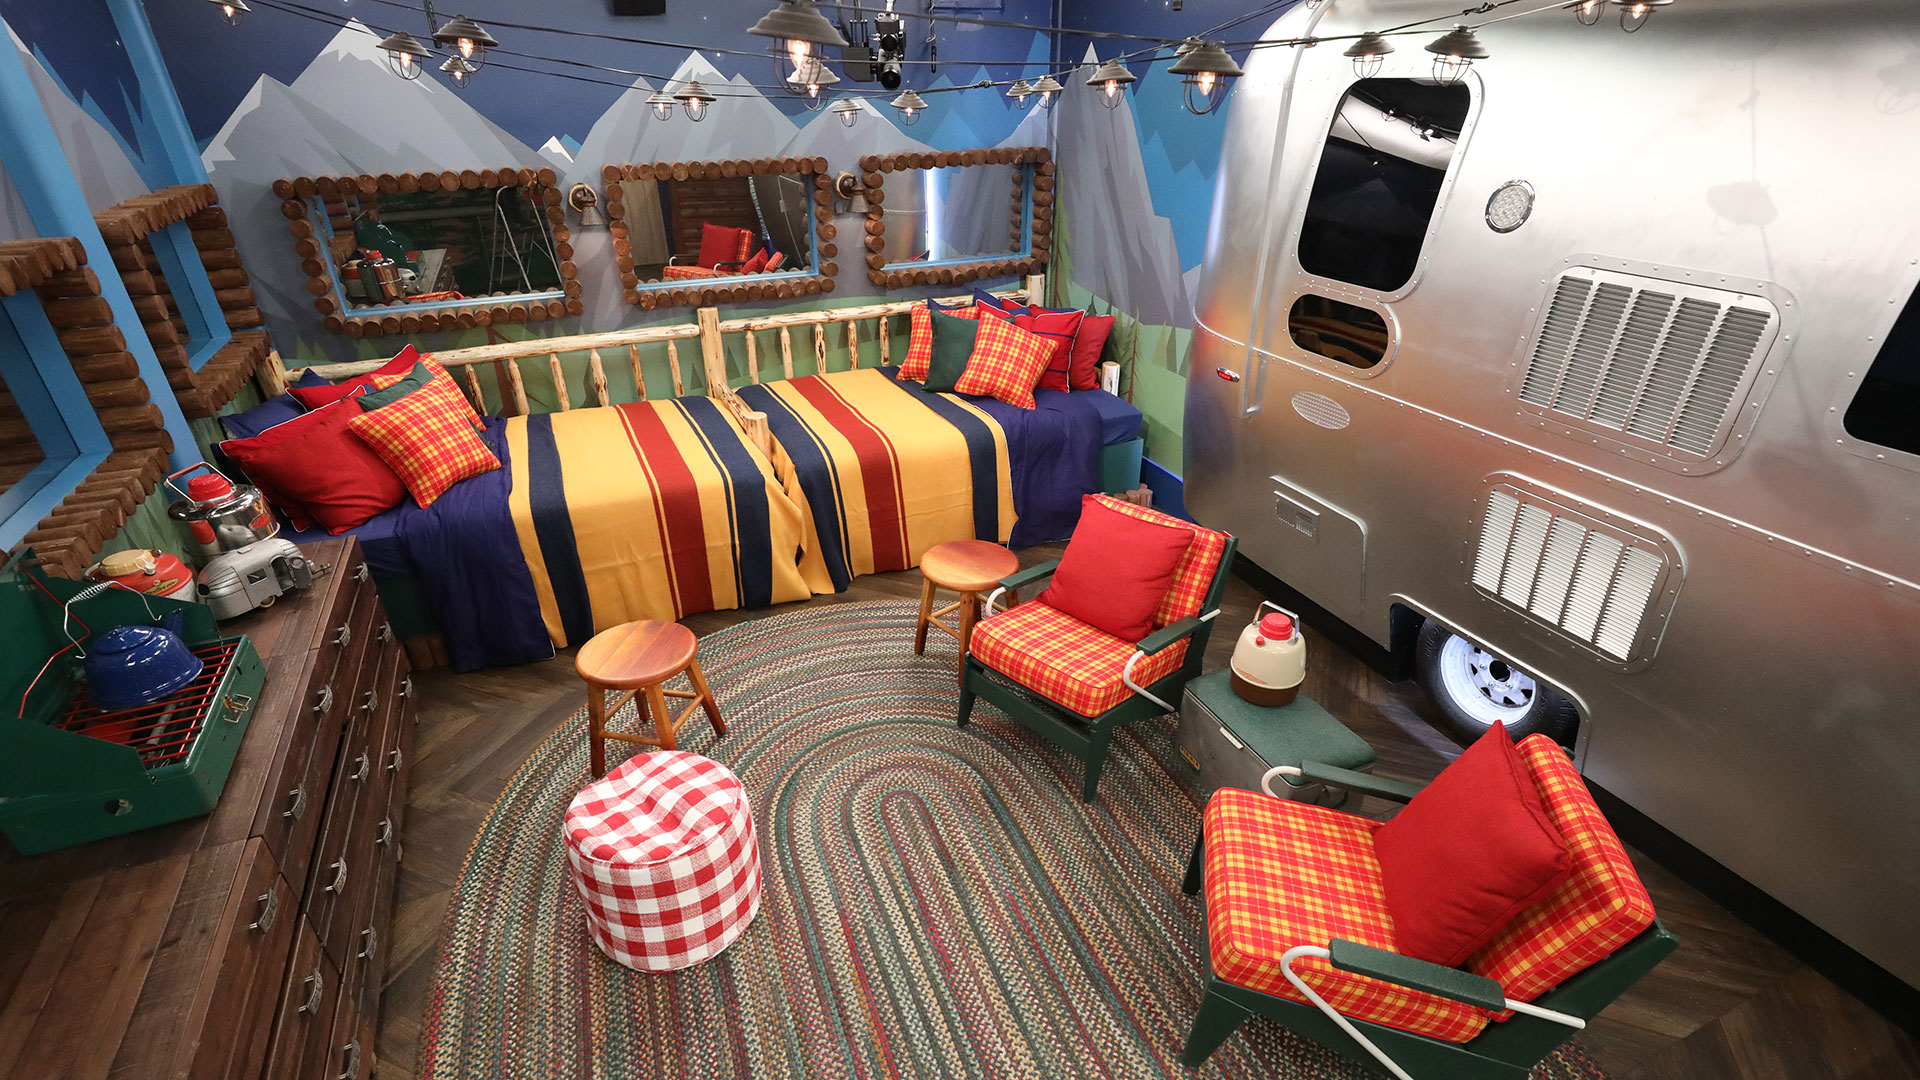 The first bedroom is all about that classic camping feel